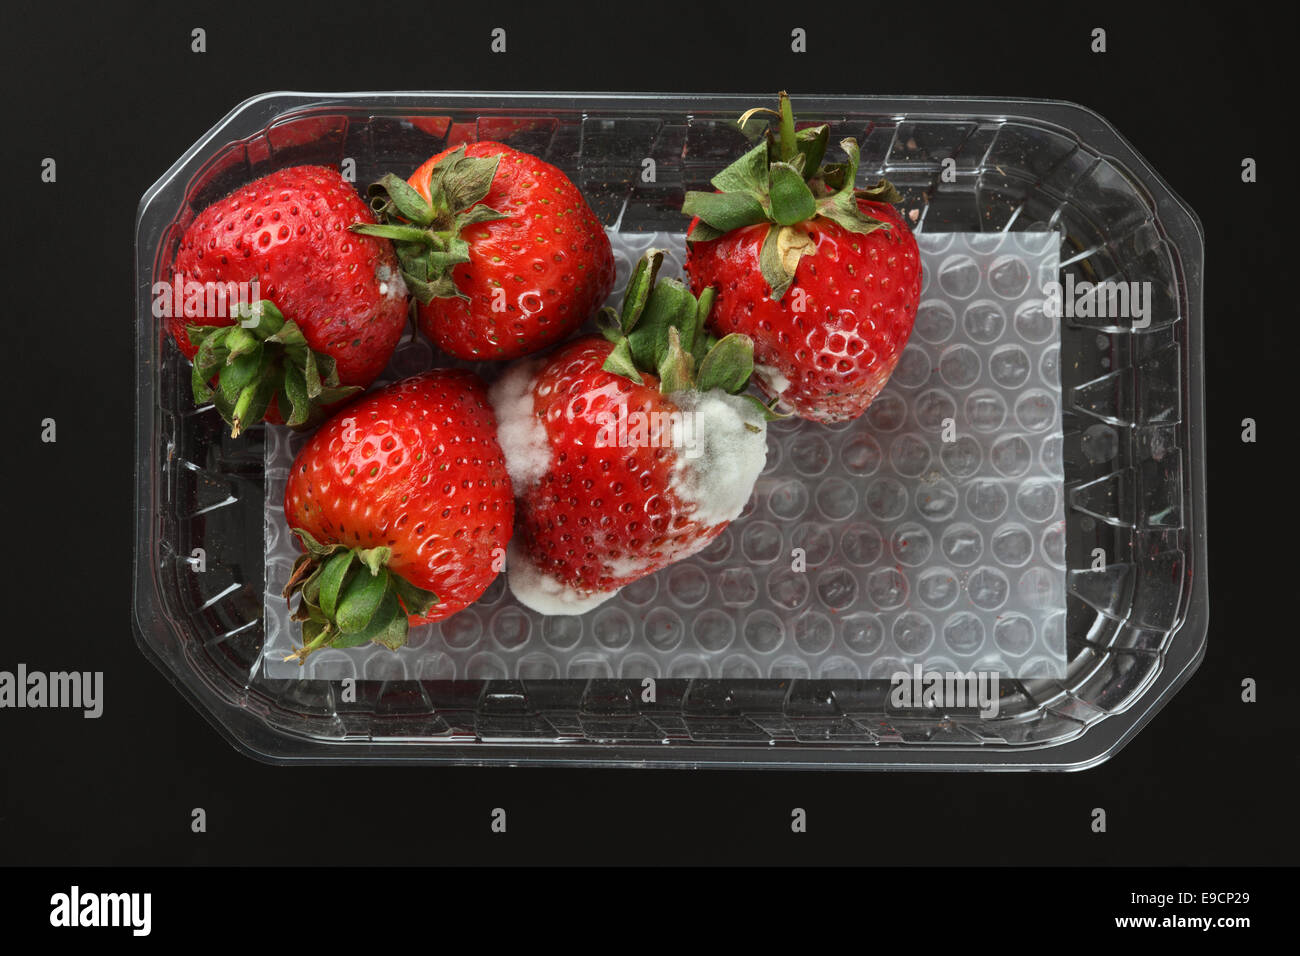 Moldy strawberries in a plastic package. Black background. - Stock Image